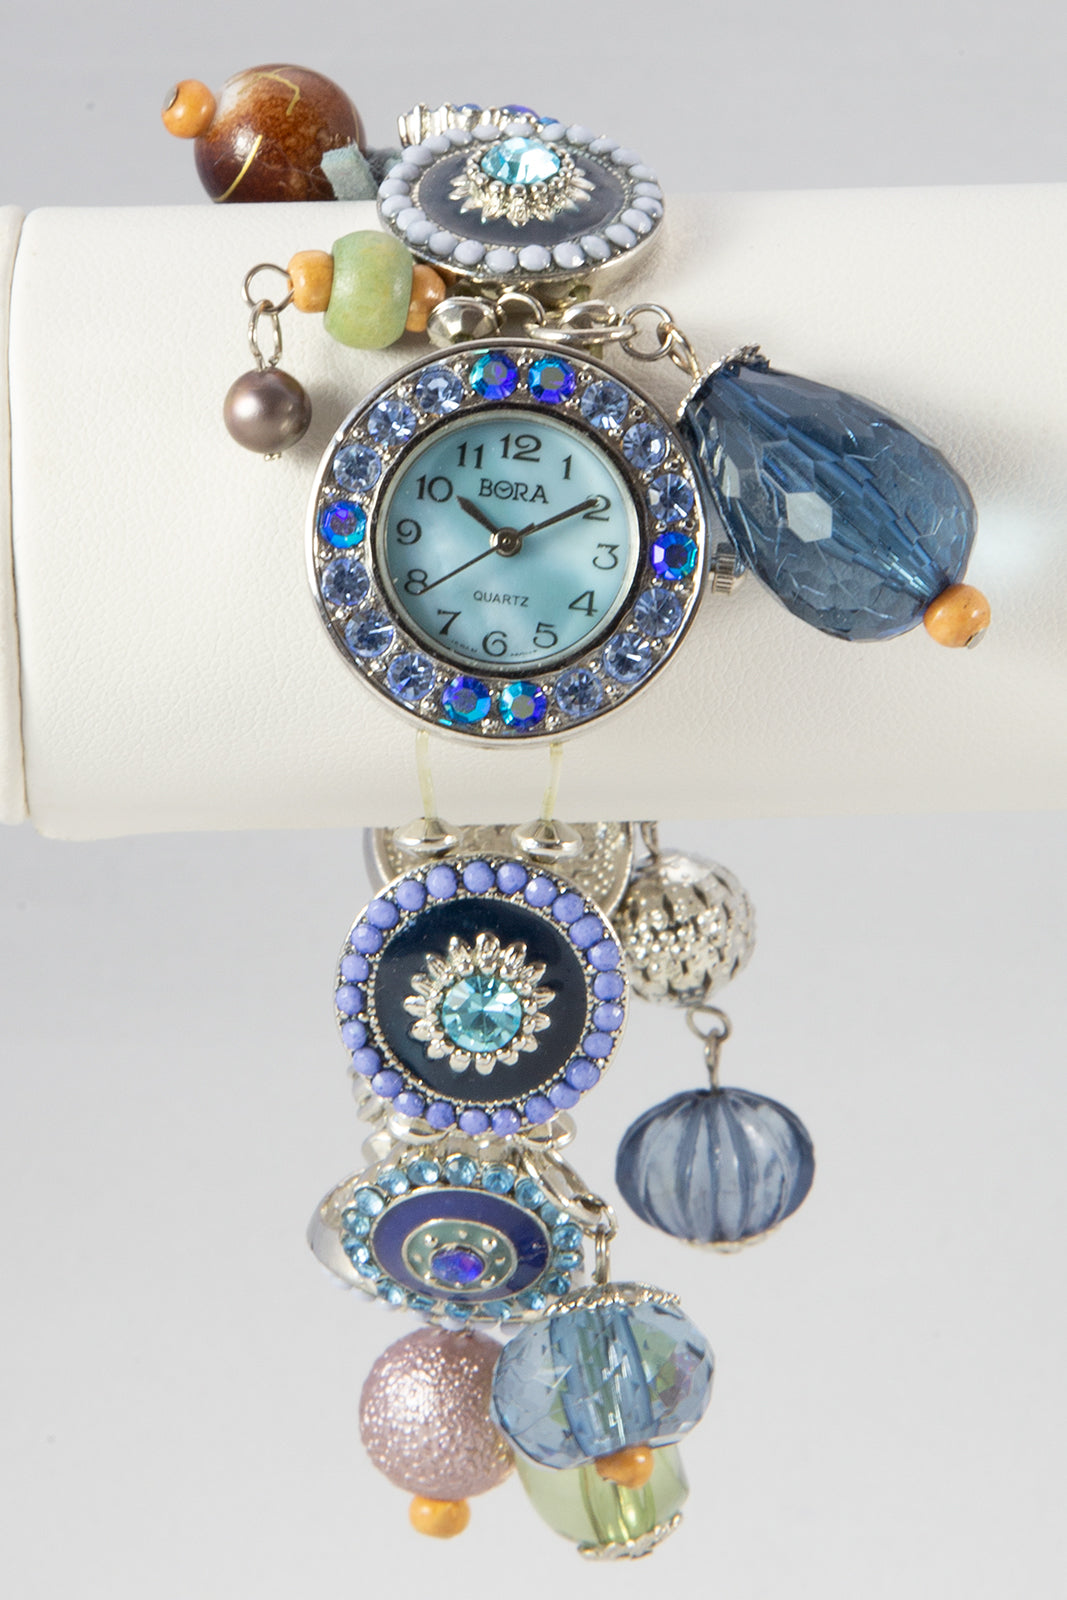 LADIES BORA MOTHER OF PEARL STRETCH BLUE DANGLES WRISTWATCH BRACELET